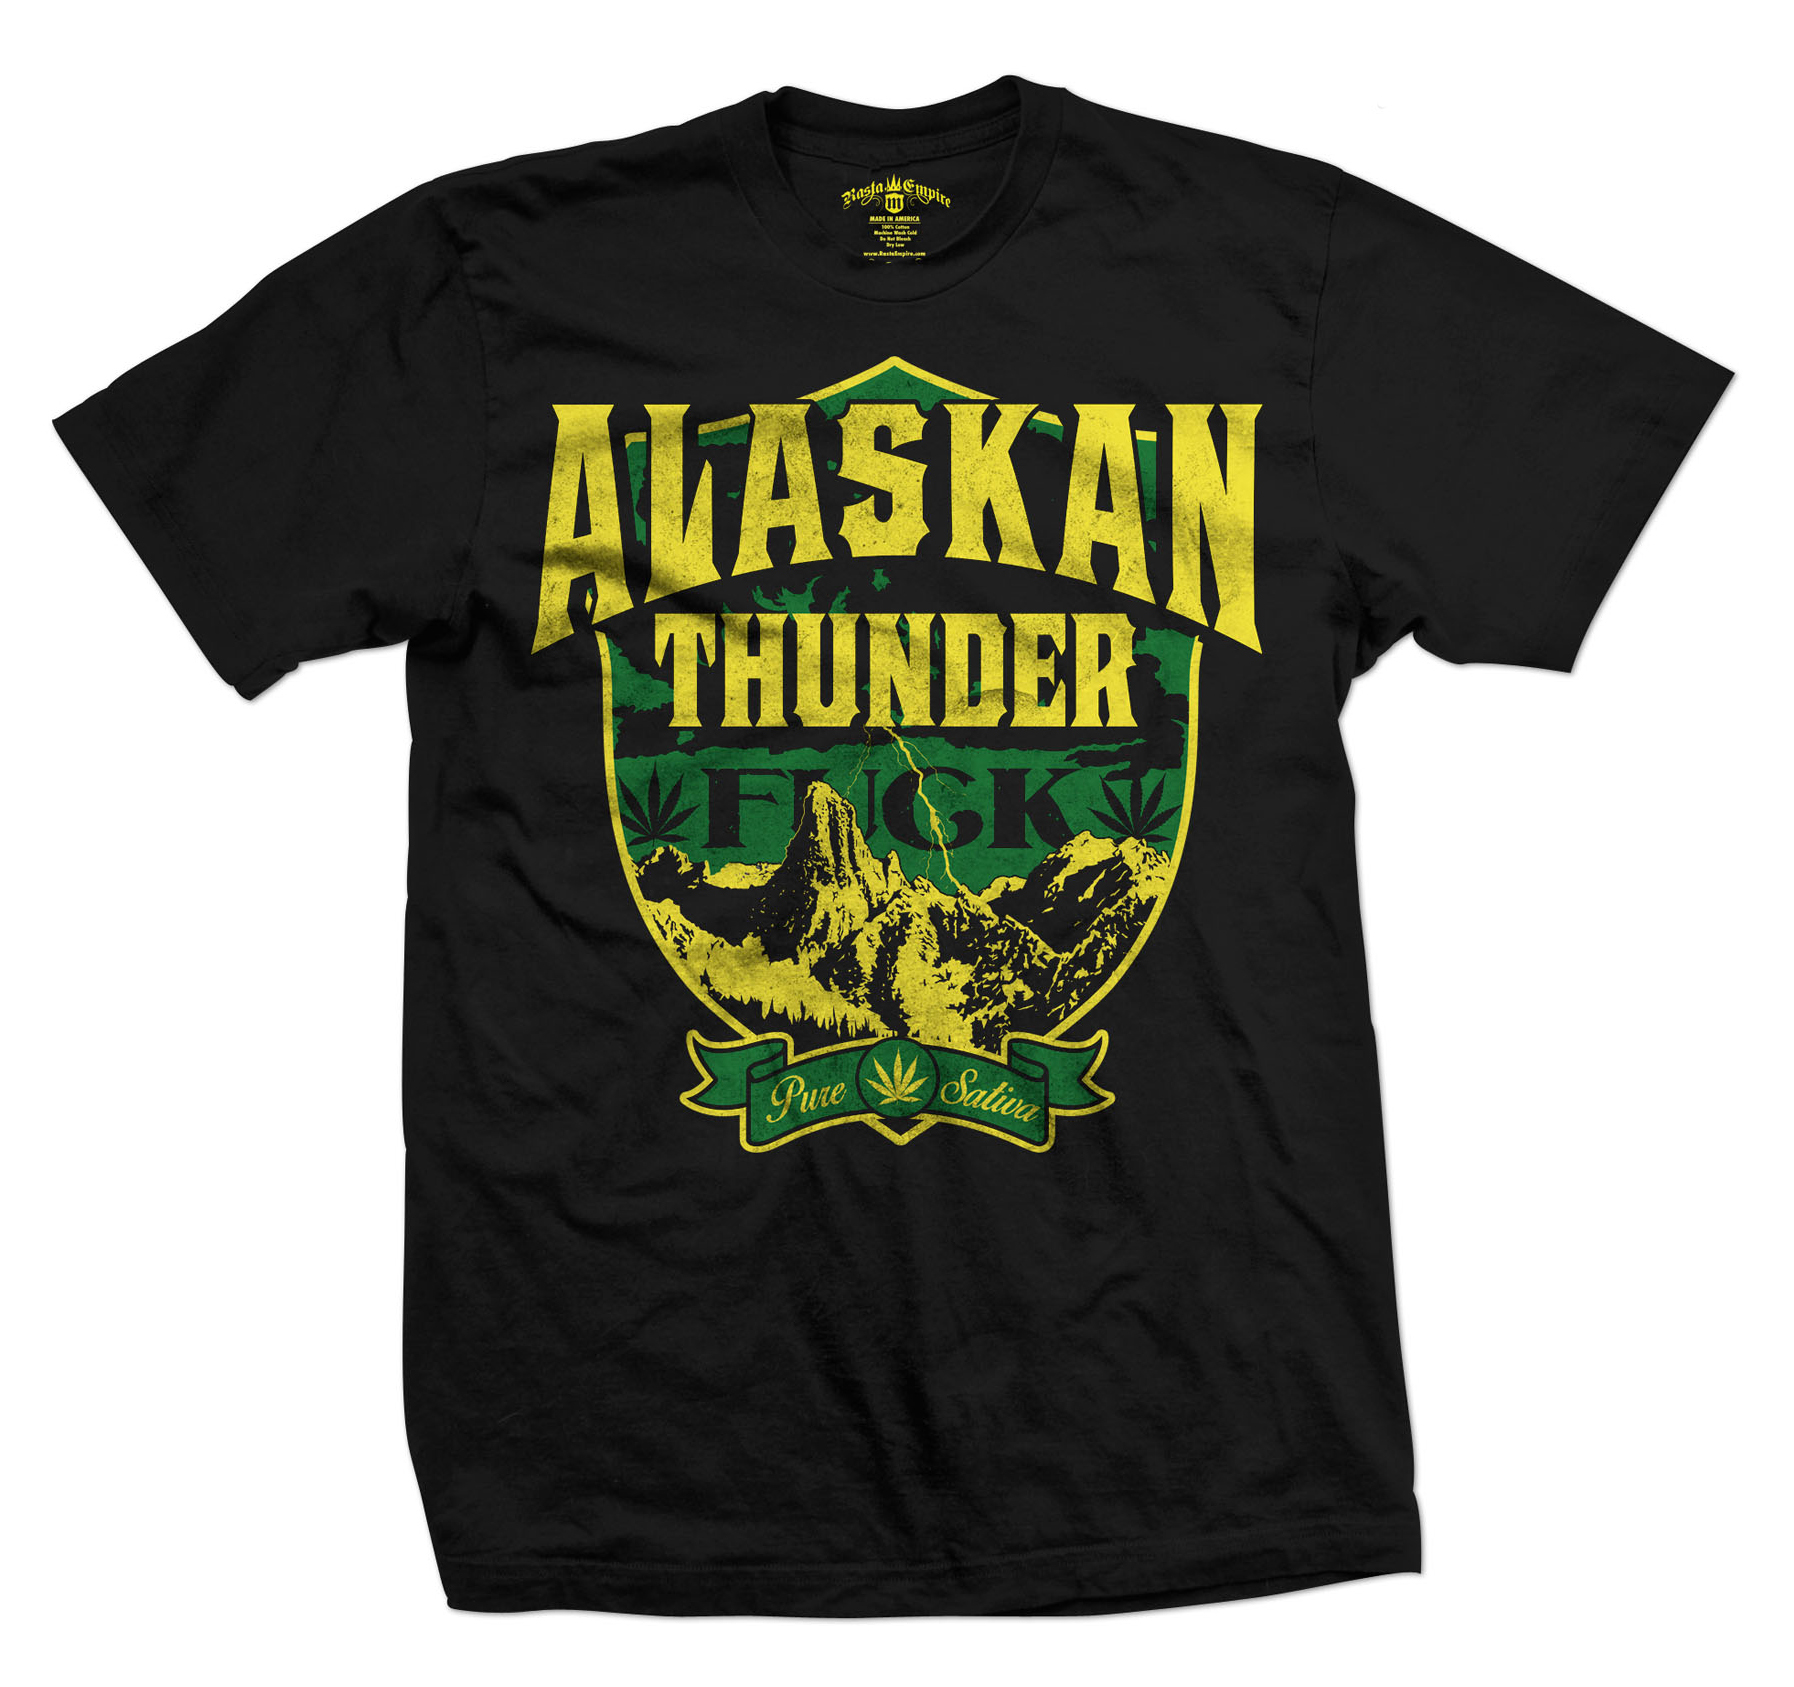 Alaskan Thunder Fuck marijuana t-shirt wholesale